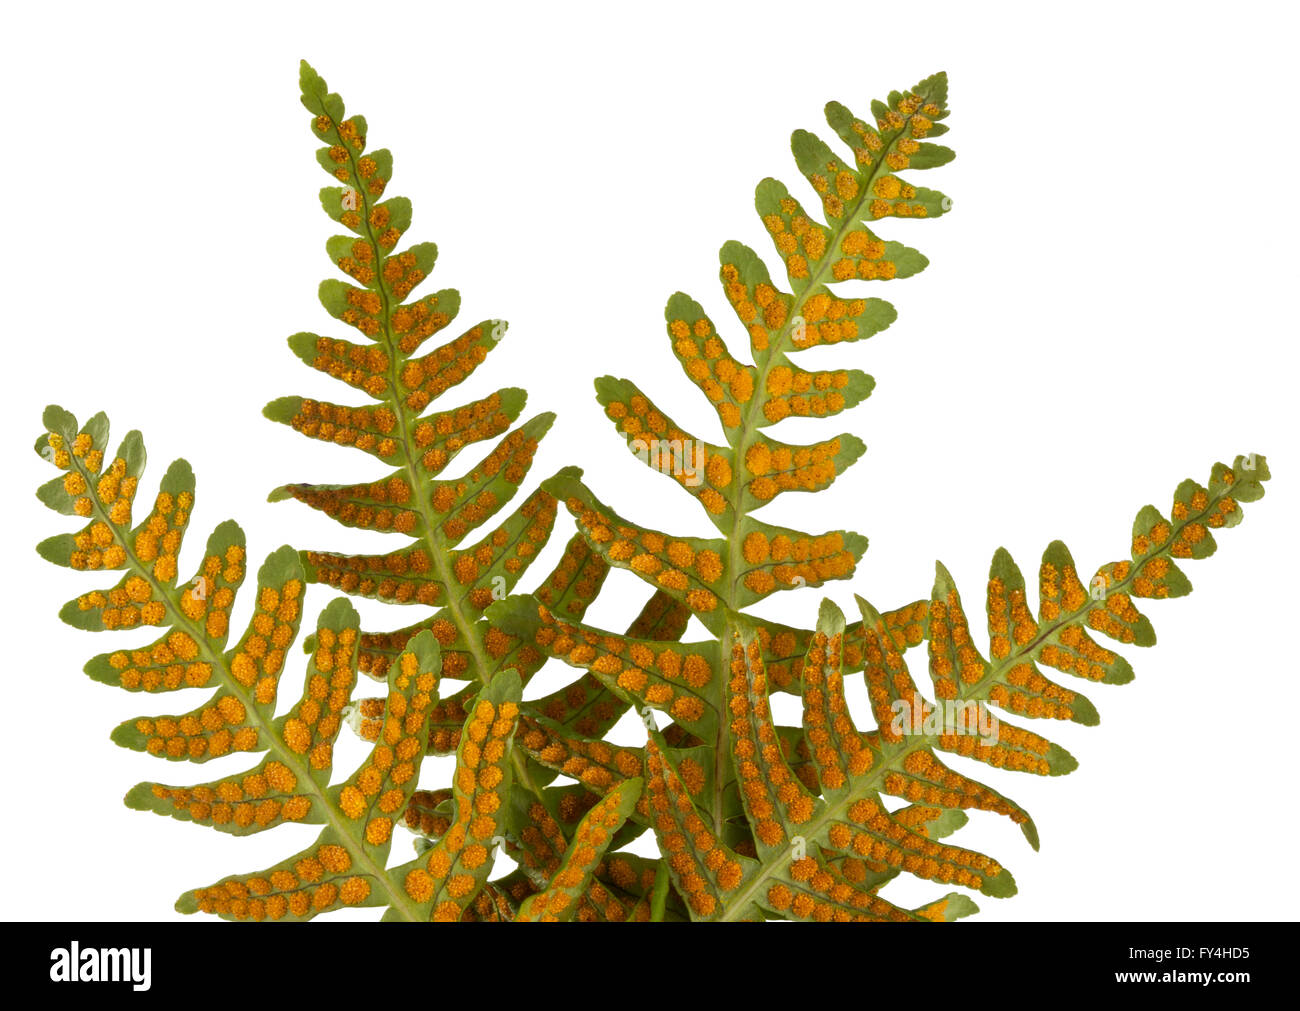 The underside of  Licorice fern leaves 'Polypodium glycyrrhiza' showing reproductive spores - Stock Image